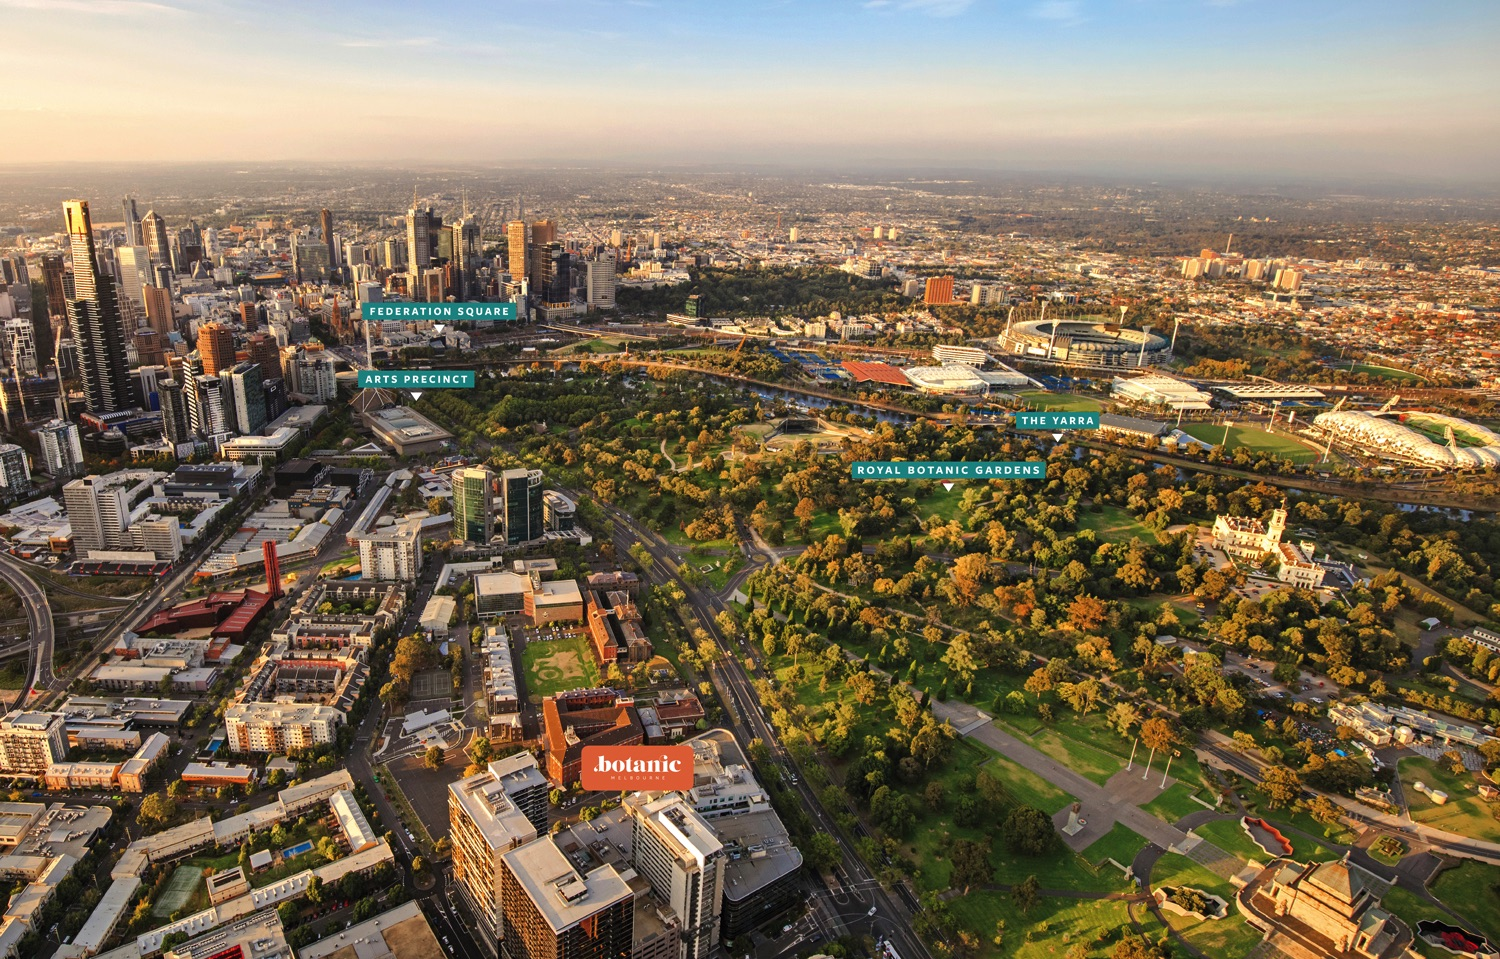 GARDEN LIVING,CITY LIFE - Just south of the city's heart, surrounded by nature and culture.Feel the excitement of the city, the thrill of the Arts Precinct and the calm of the Royal Botanic Gardens